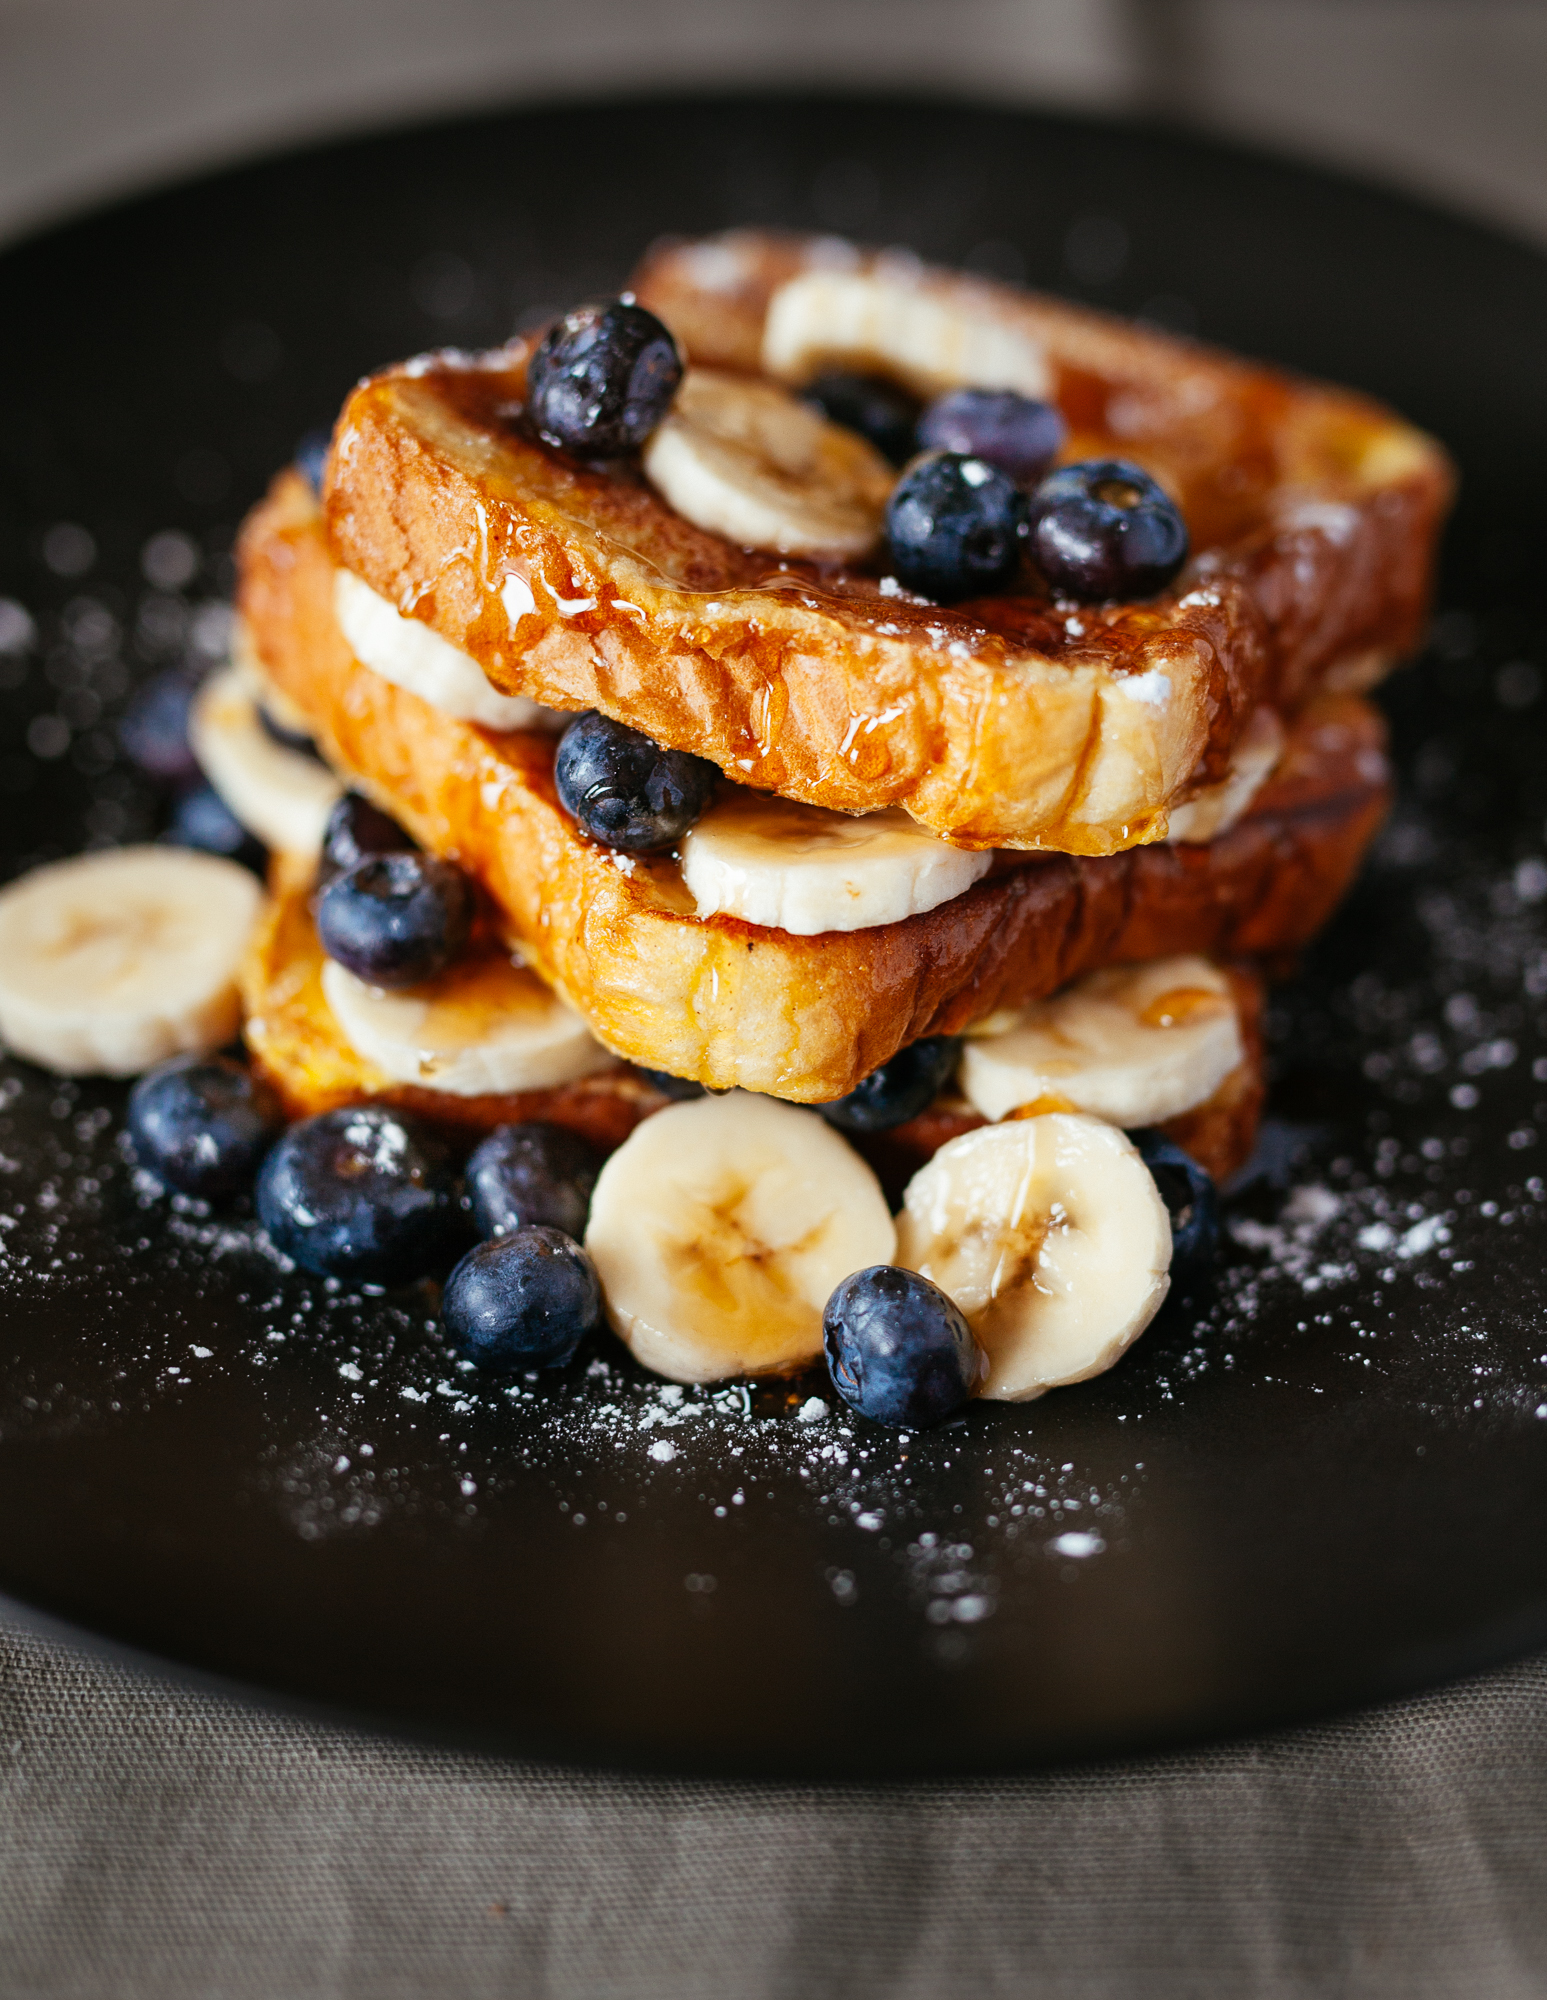 French Toast with Blueberries, Bananas, Vermont Maple Syrup